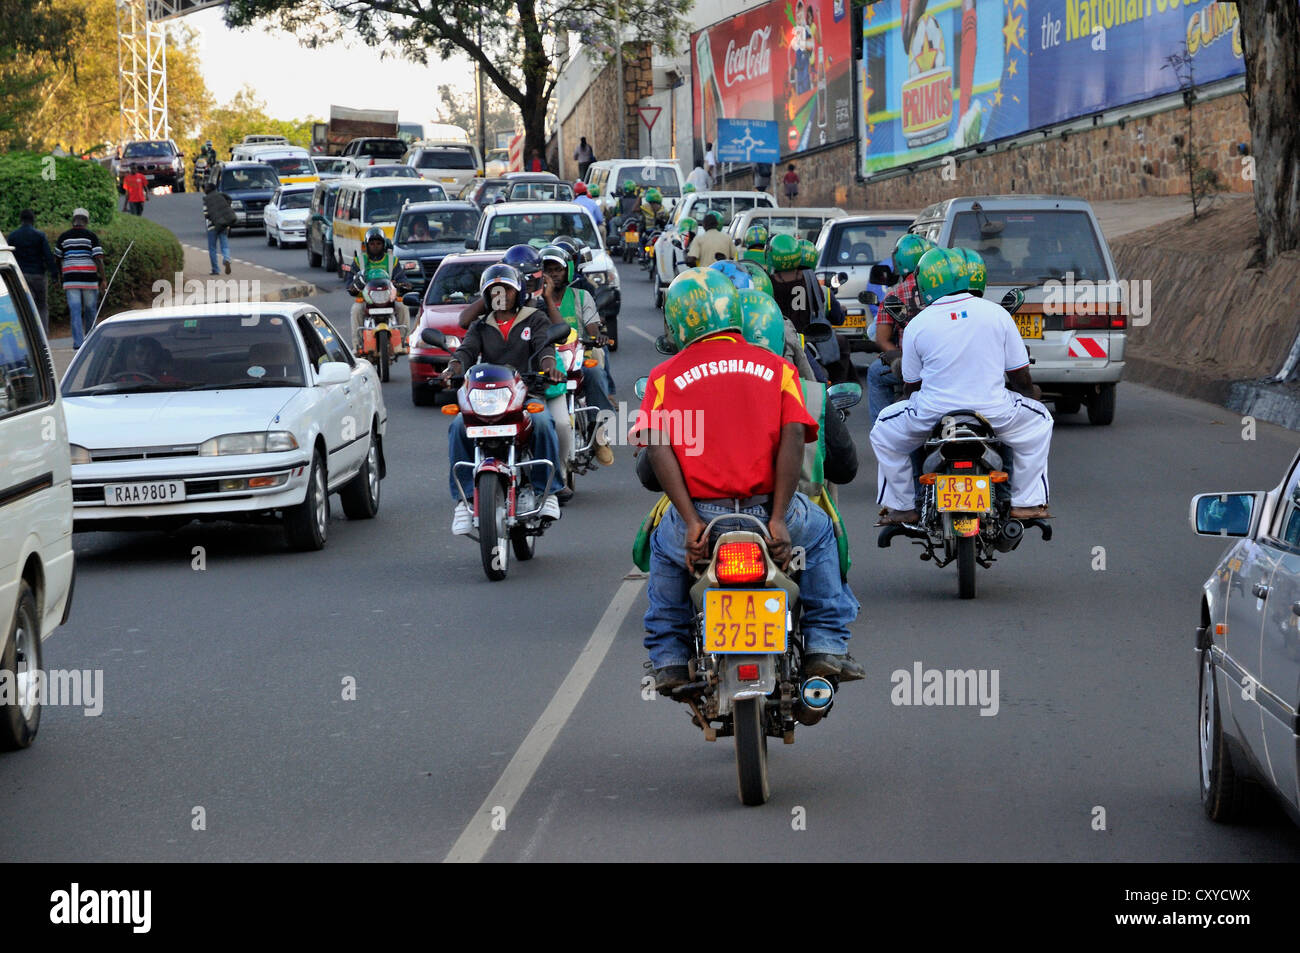 Motorcycle rider wearing a jersey of the German national football team, Kigali, Rwanda, Africa - Stock Image